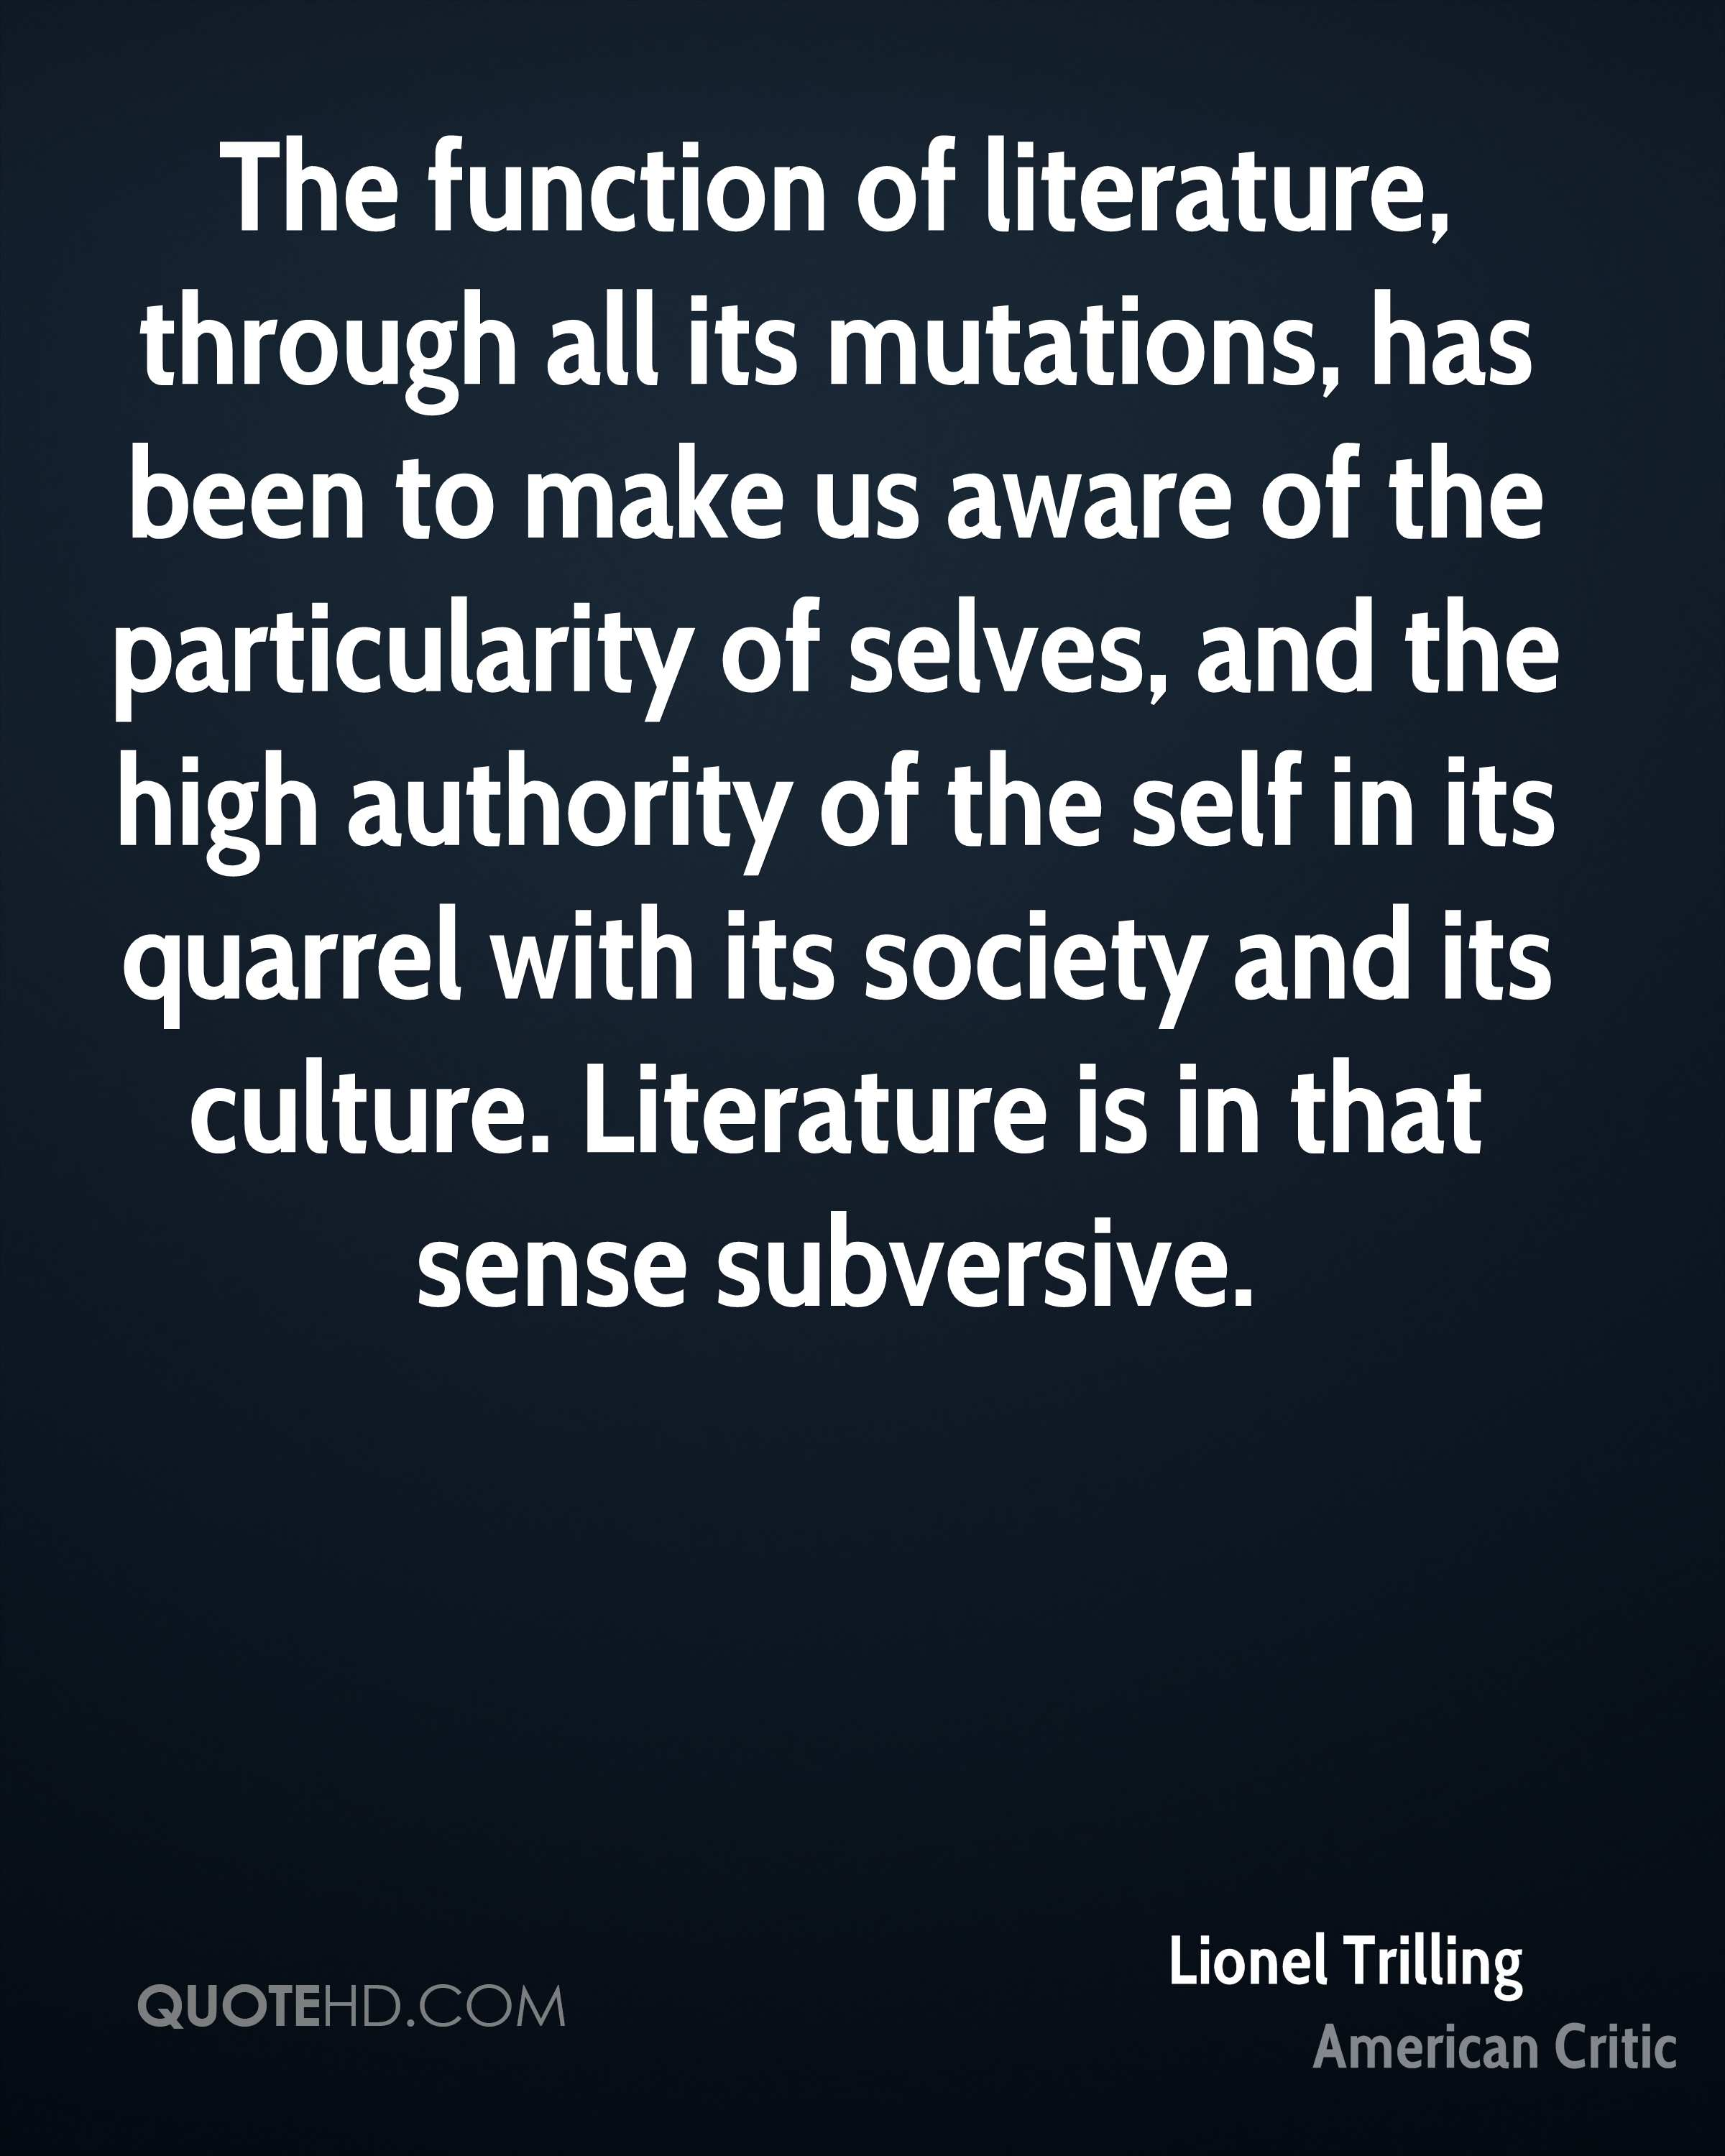 The function of literature, through all its mutations, has been to make us aware of the particularity of selves, and the high authority of the self in its quarrel with its society and its culture. Literature is in that sense subversive.